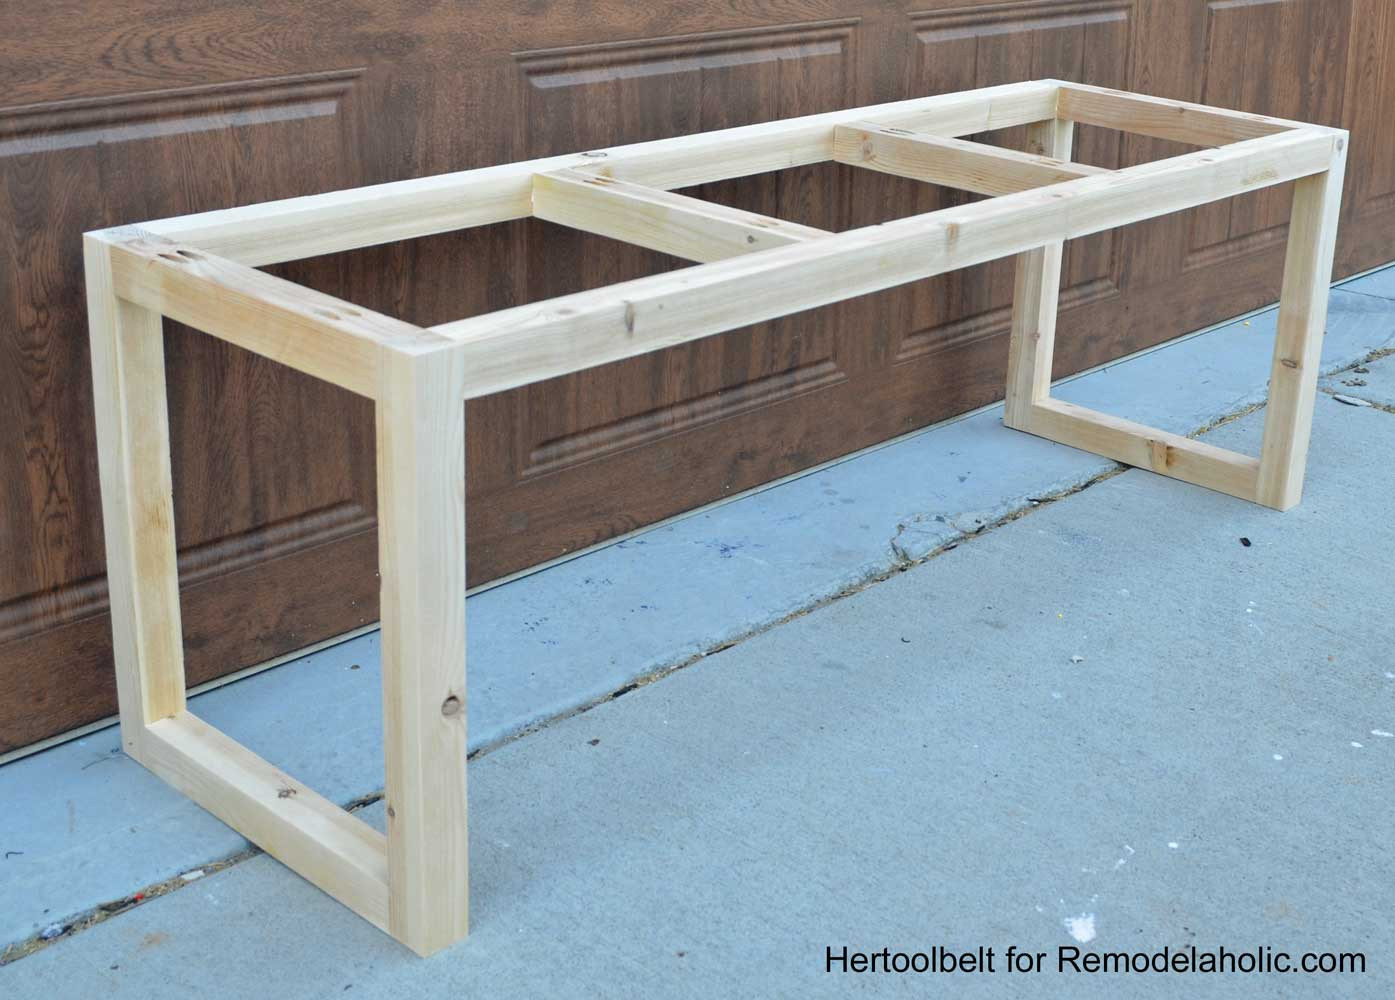 Best ideas about DIY Wooden Bench . Save or Pin Remodelaholic Now.